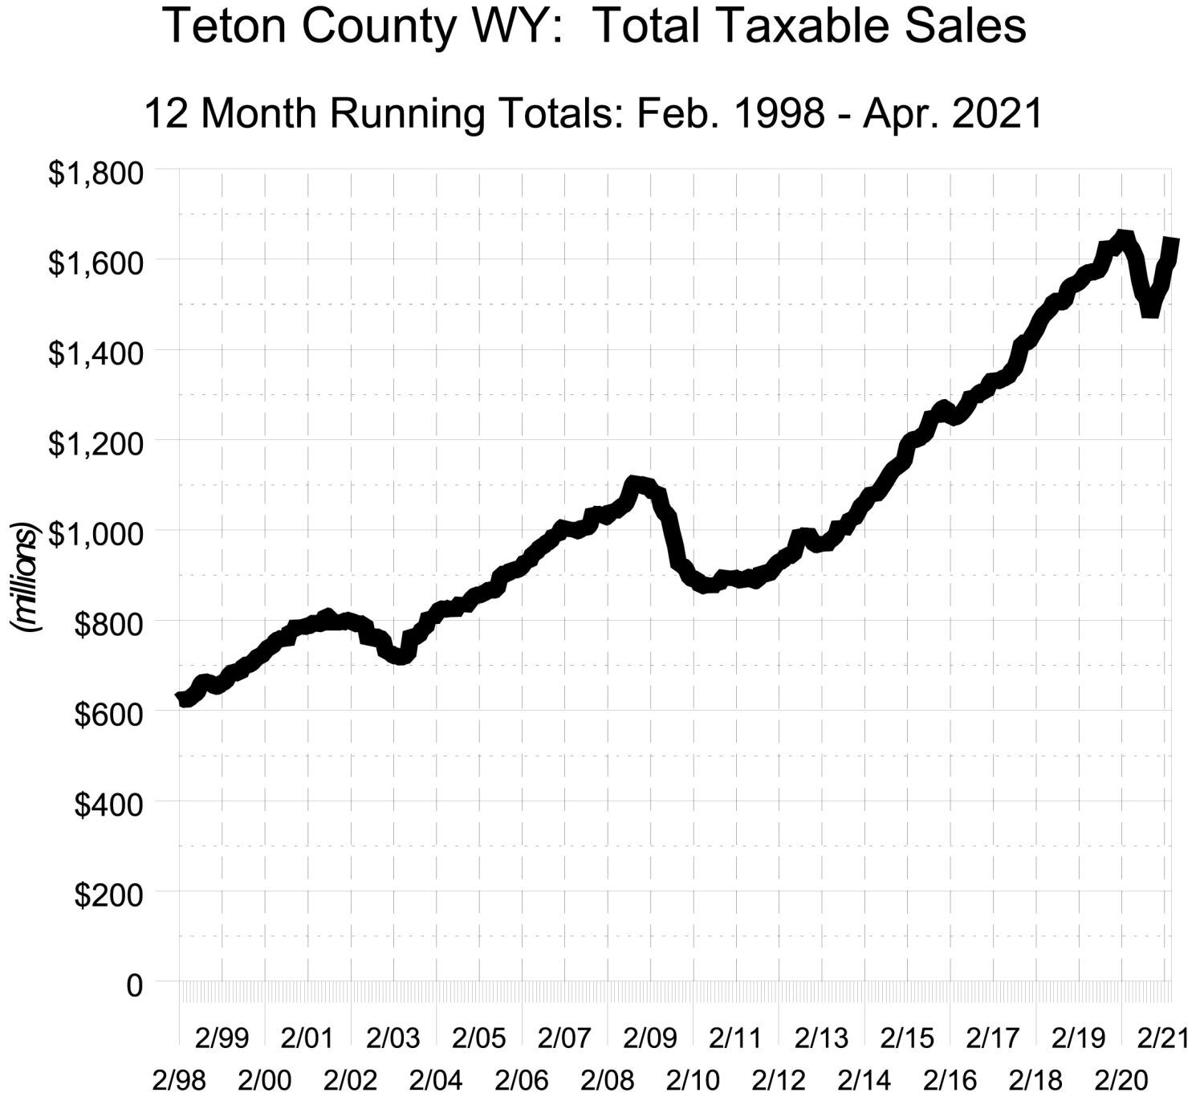 Teton County, WY - Total Taxable Sales